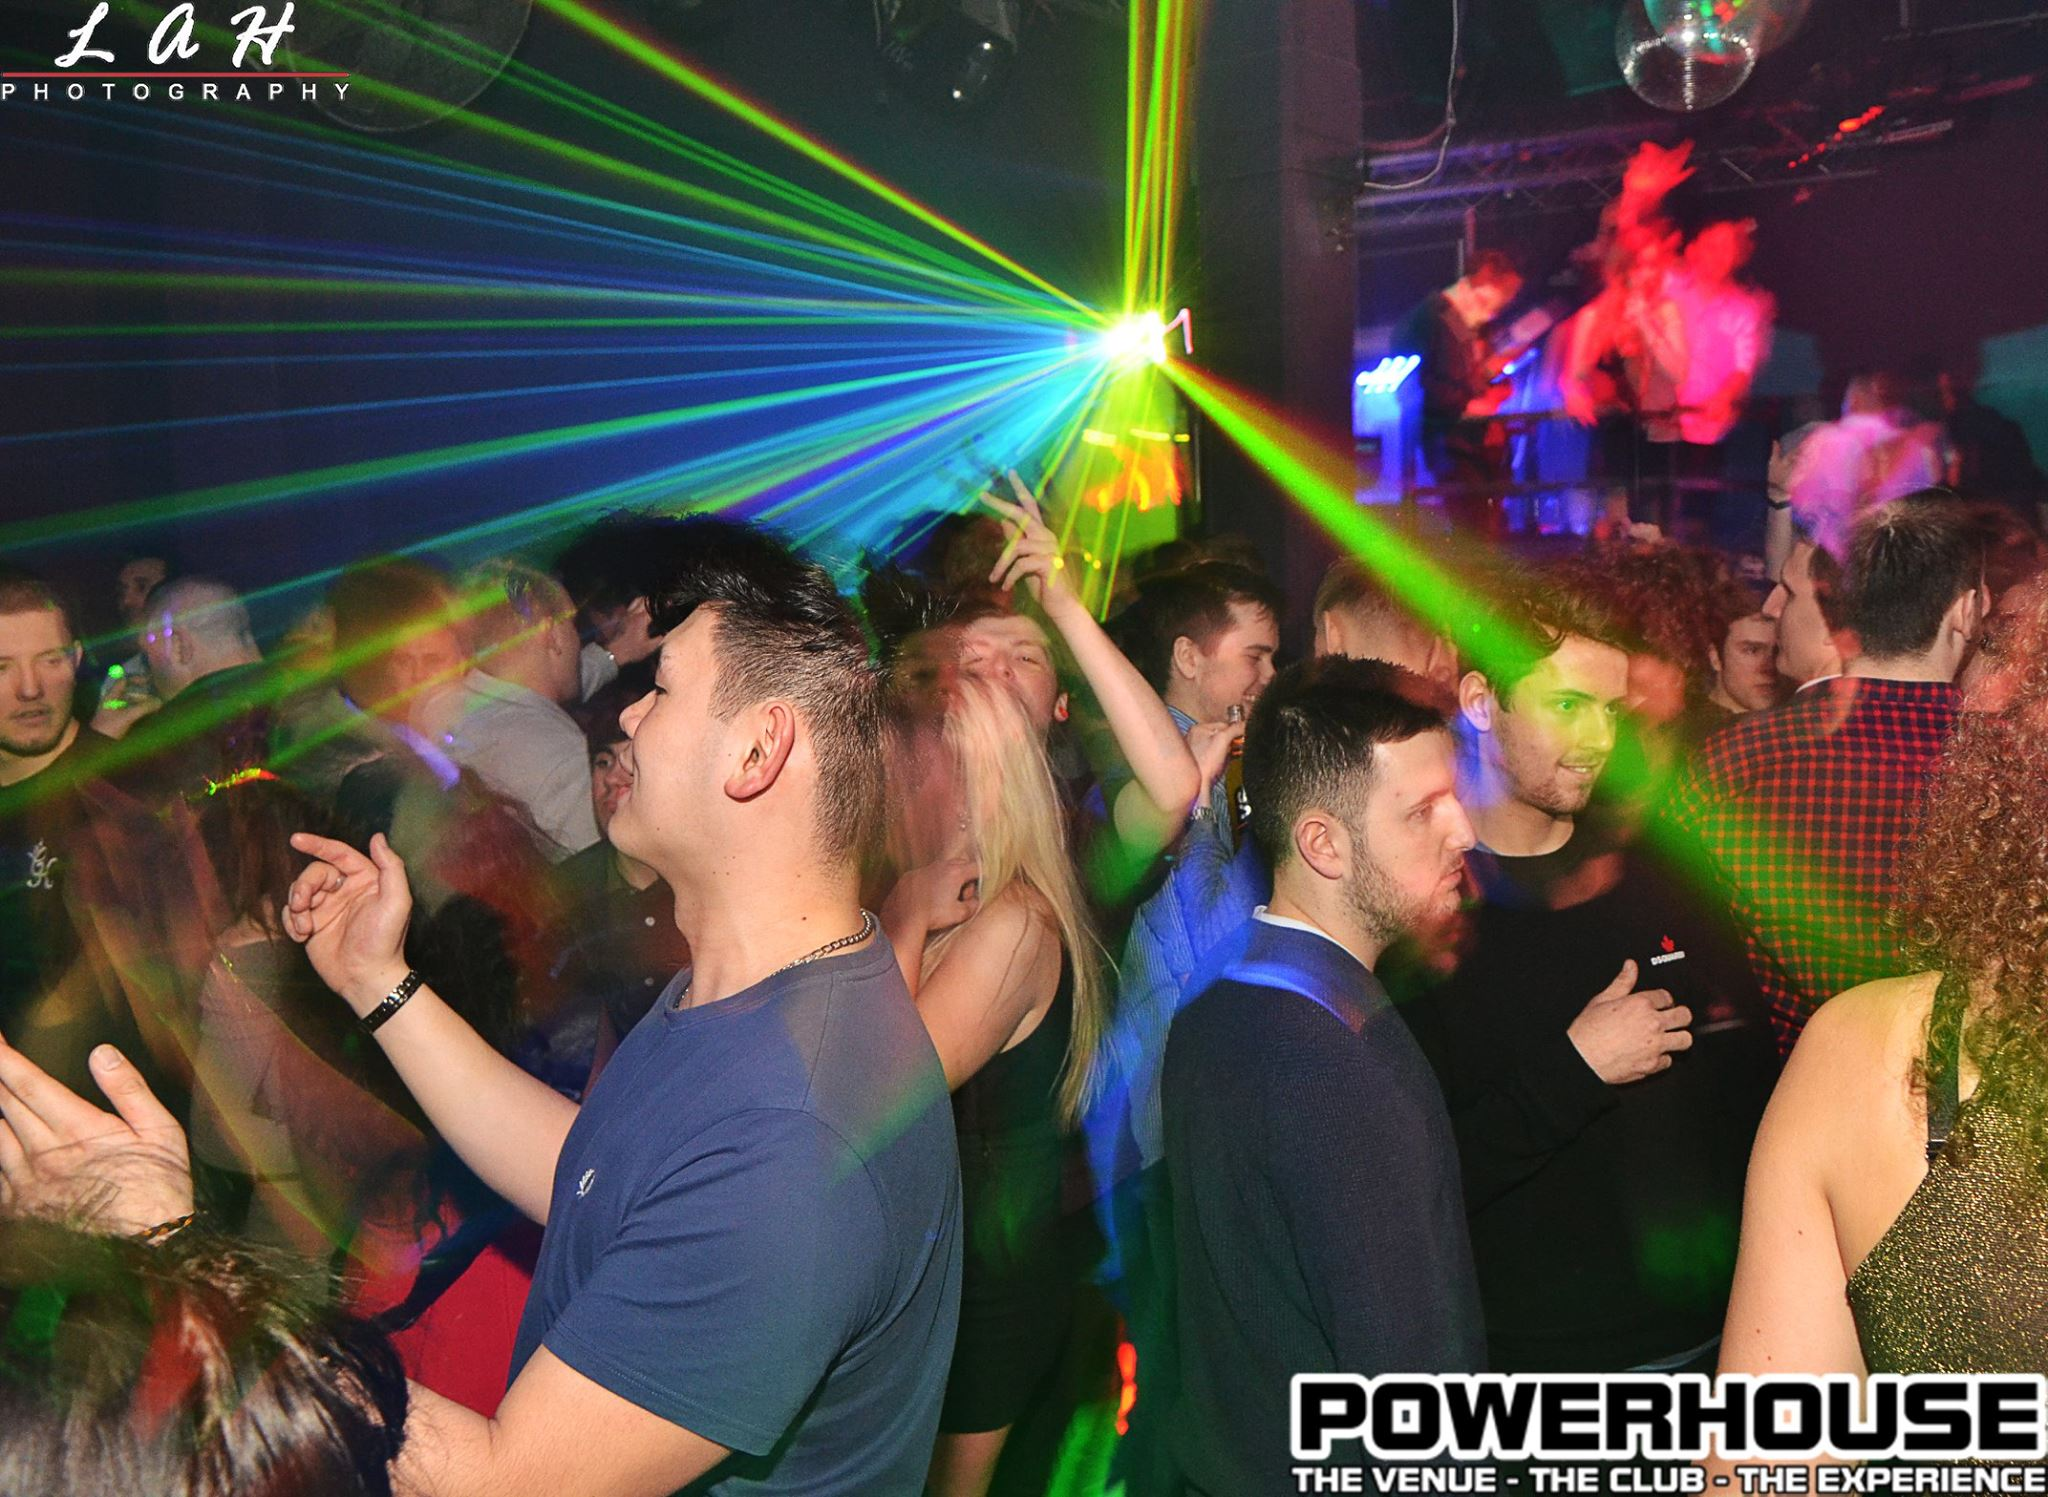 People partying under bright lights in Newcastle's Powerhouse nightclub, where celebrities often spend nights out